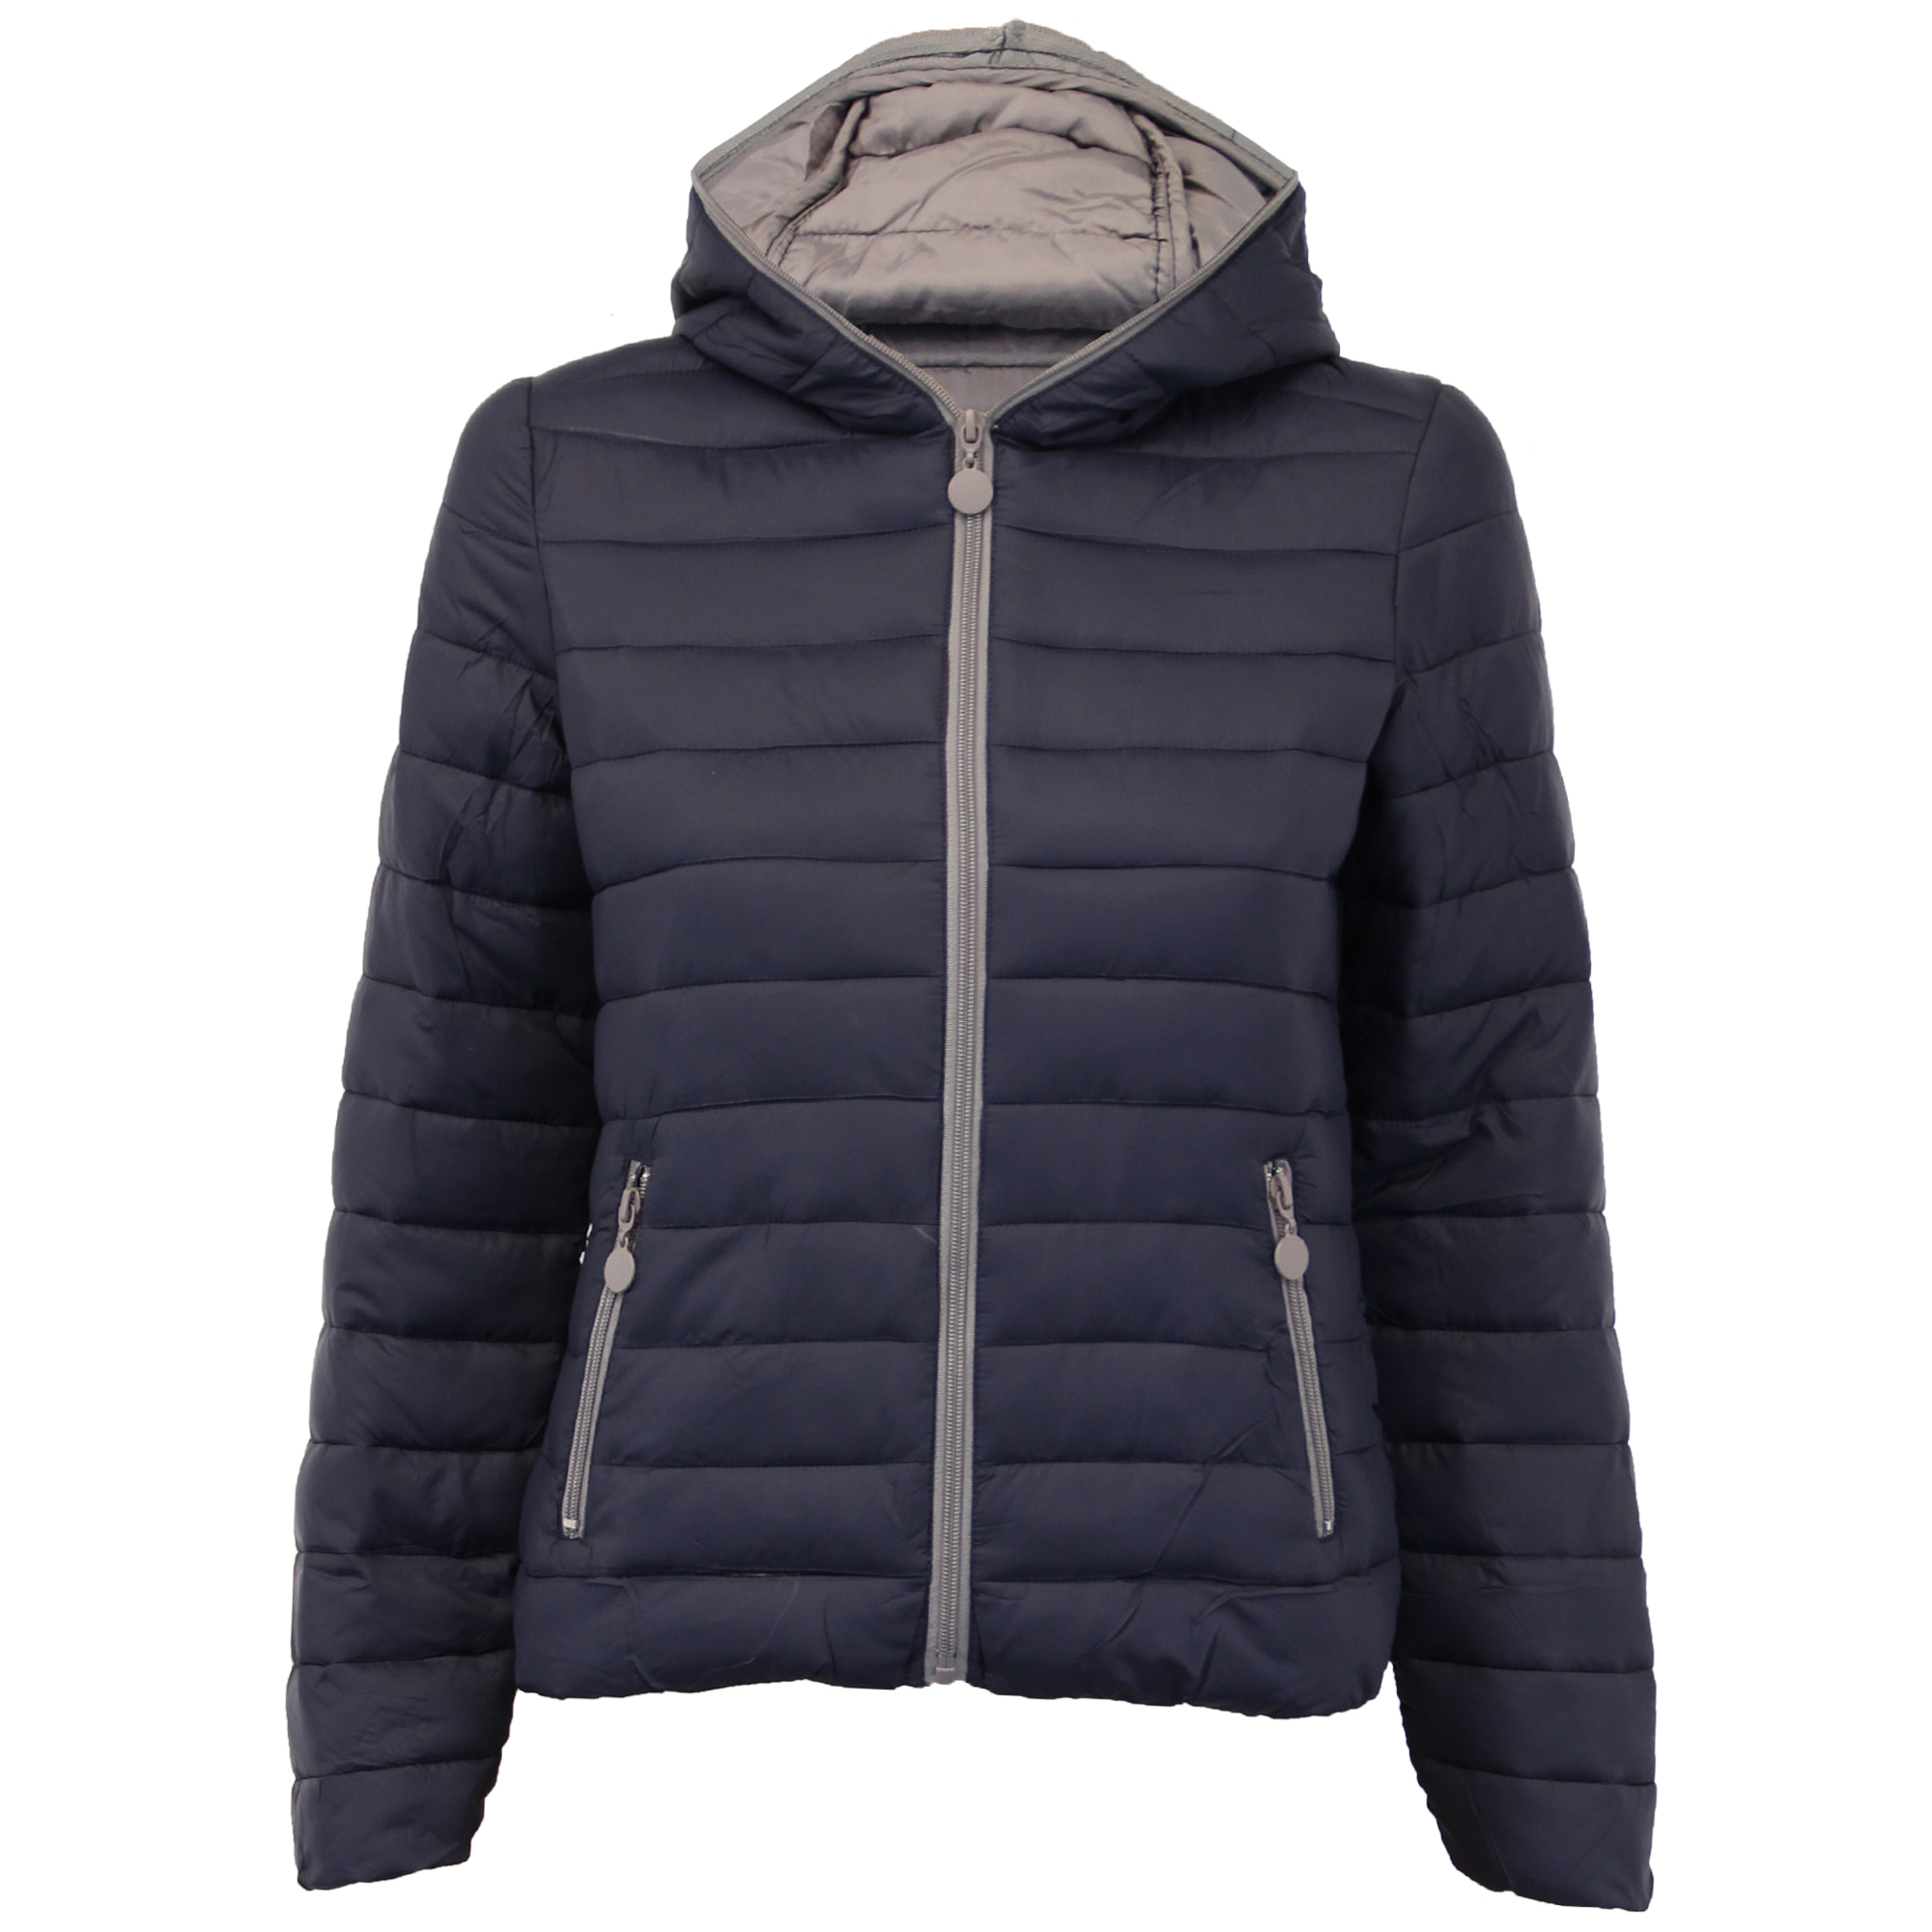 Womens hooded winter coats